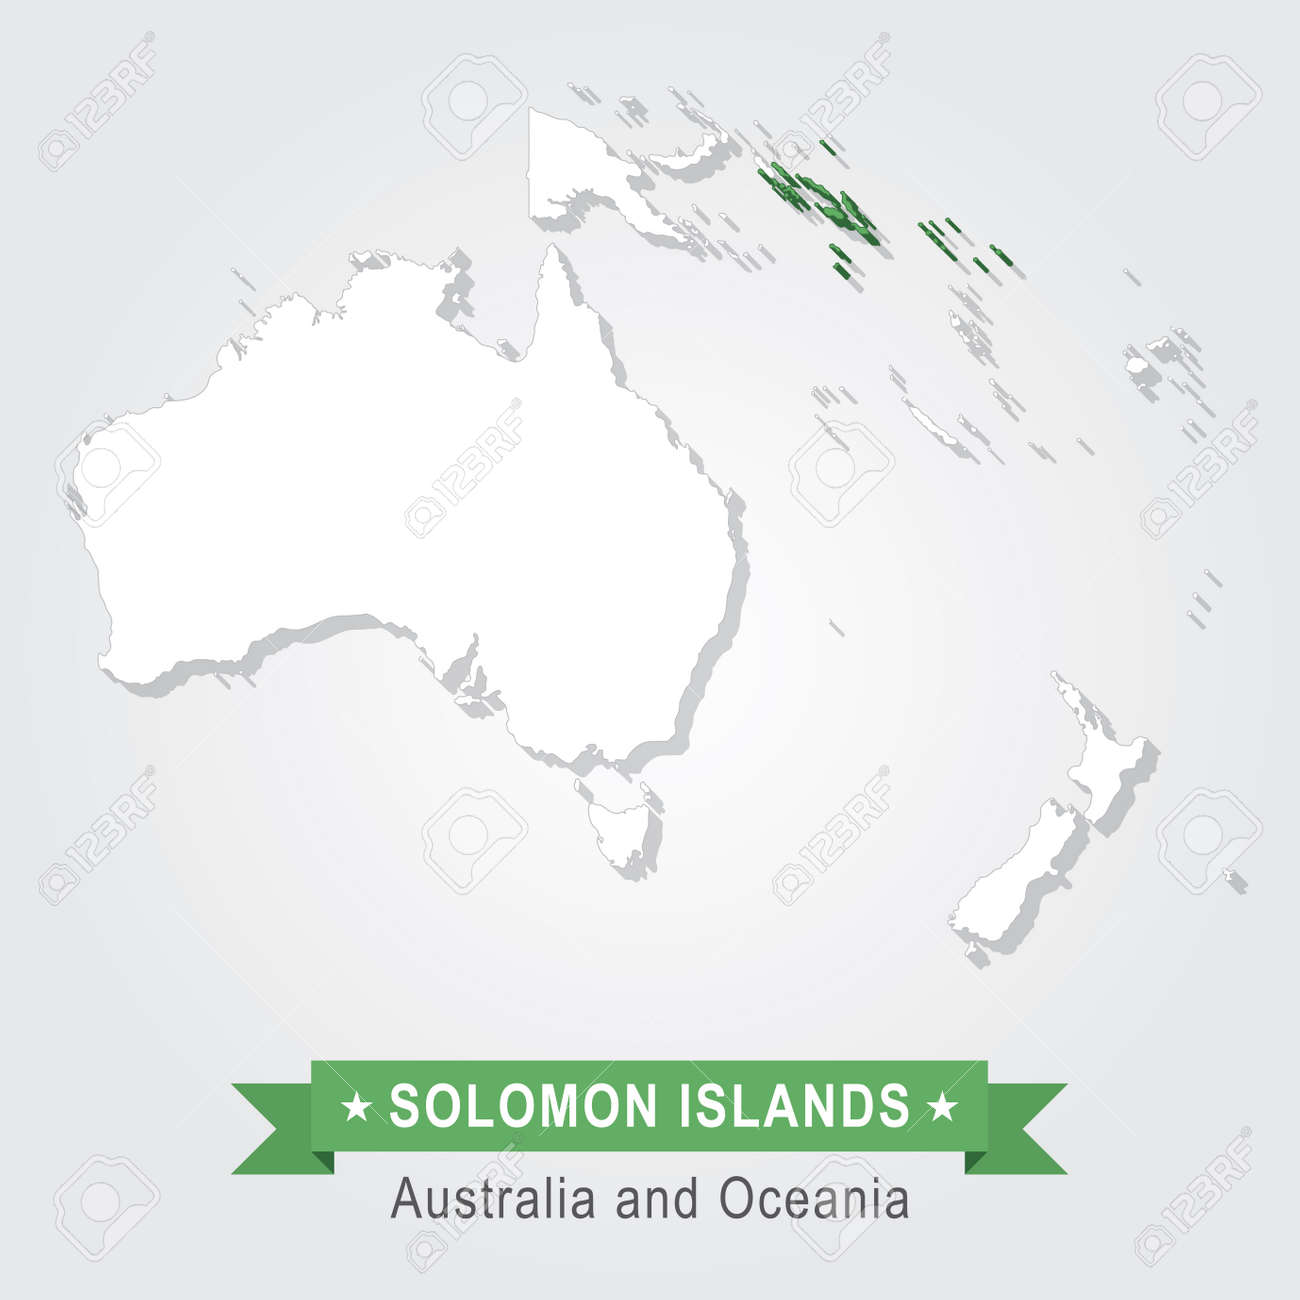 Solomon Islands Australia And Oceania Map Green Version Royalty